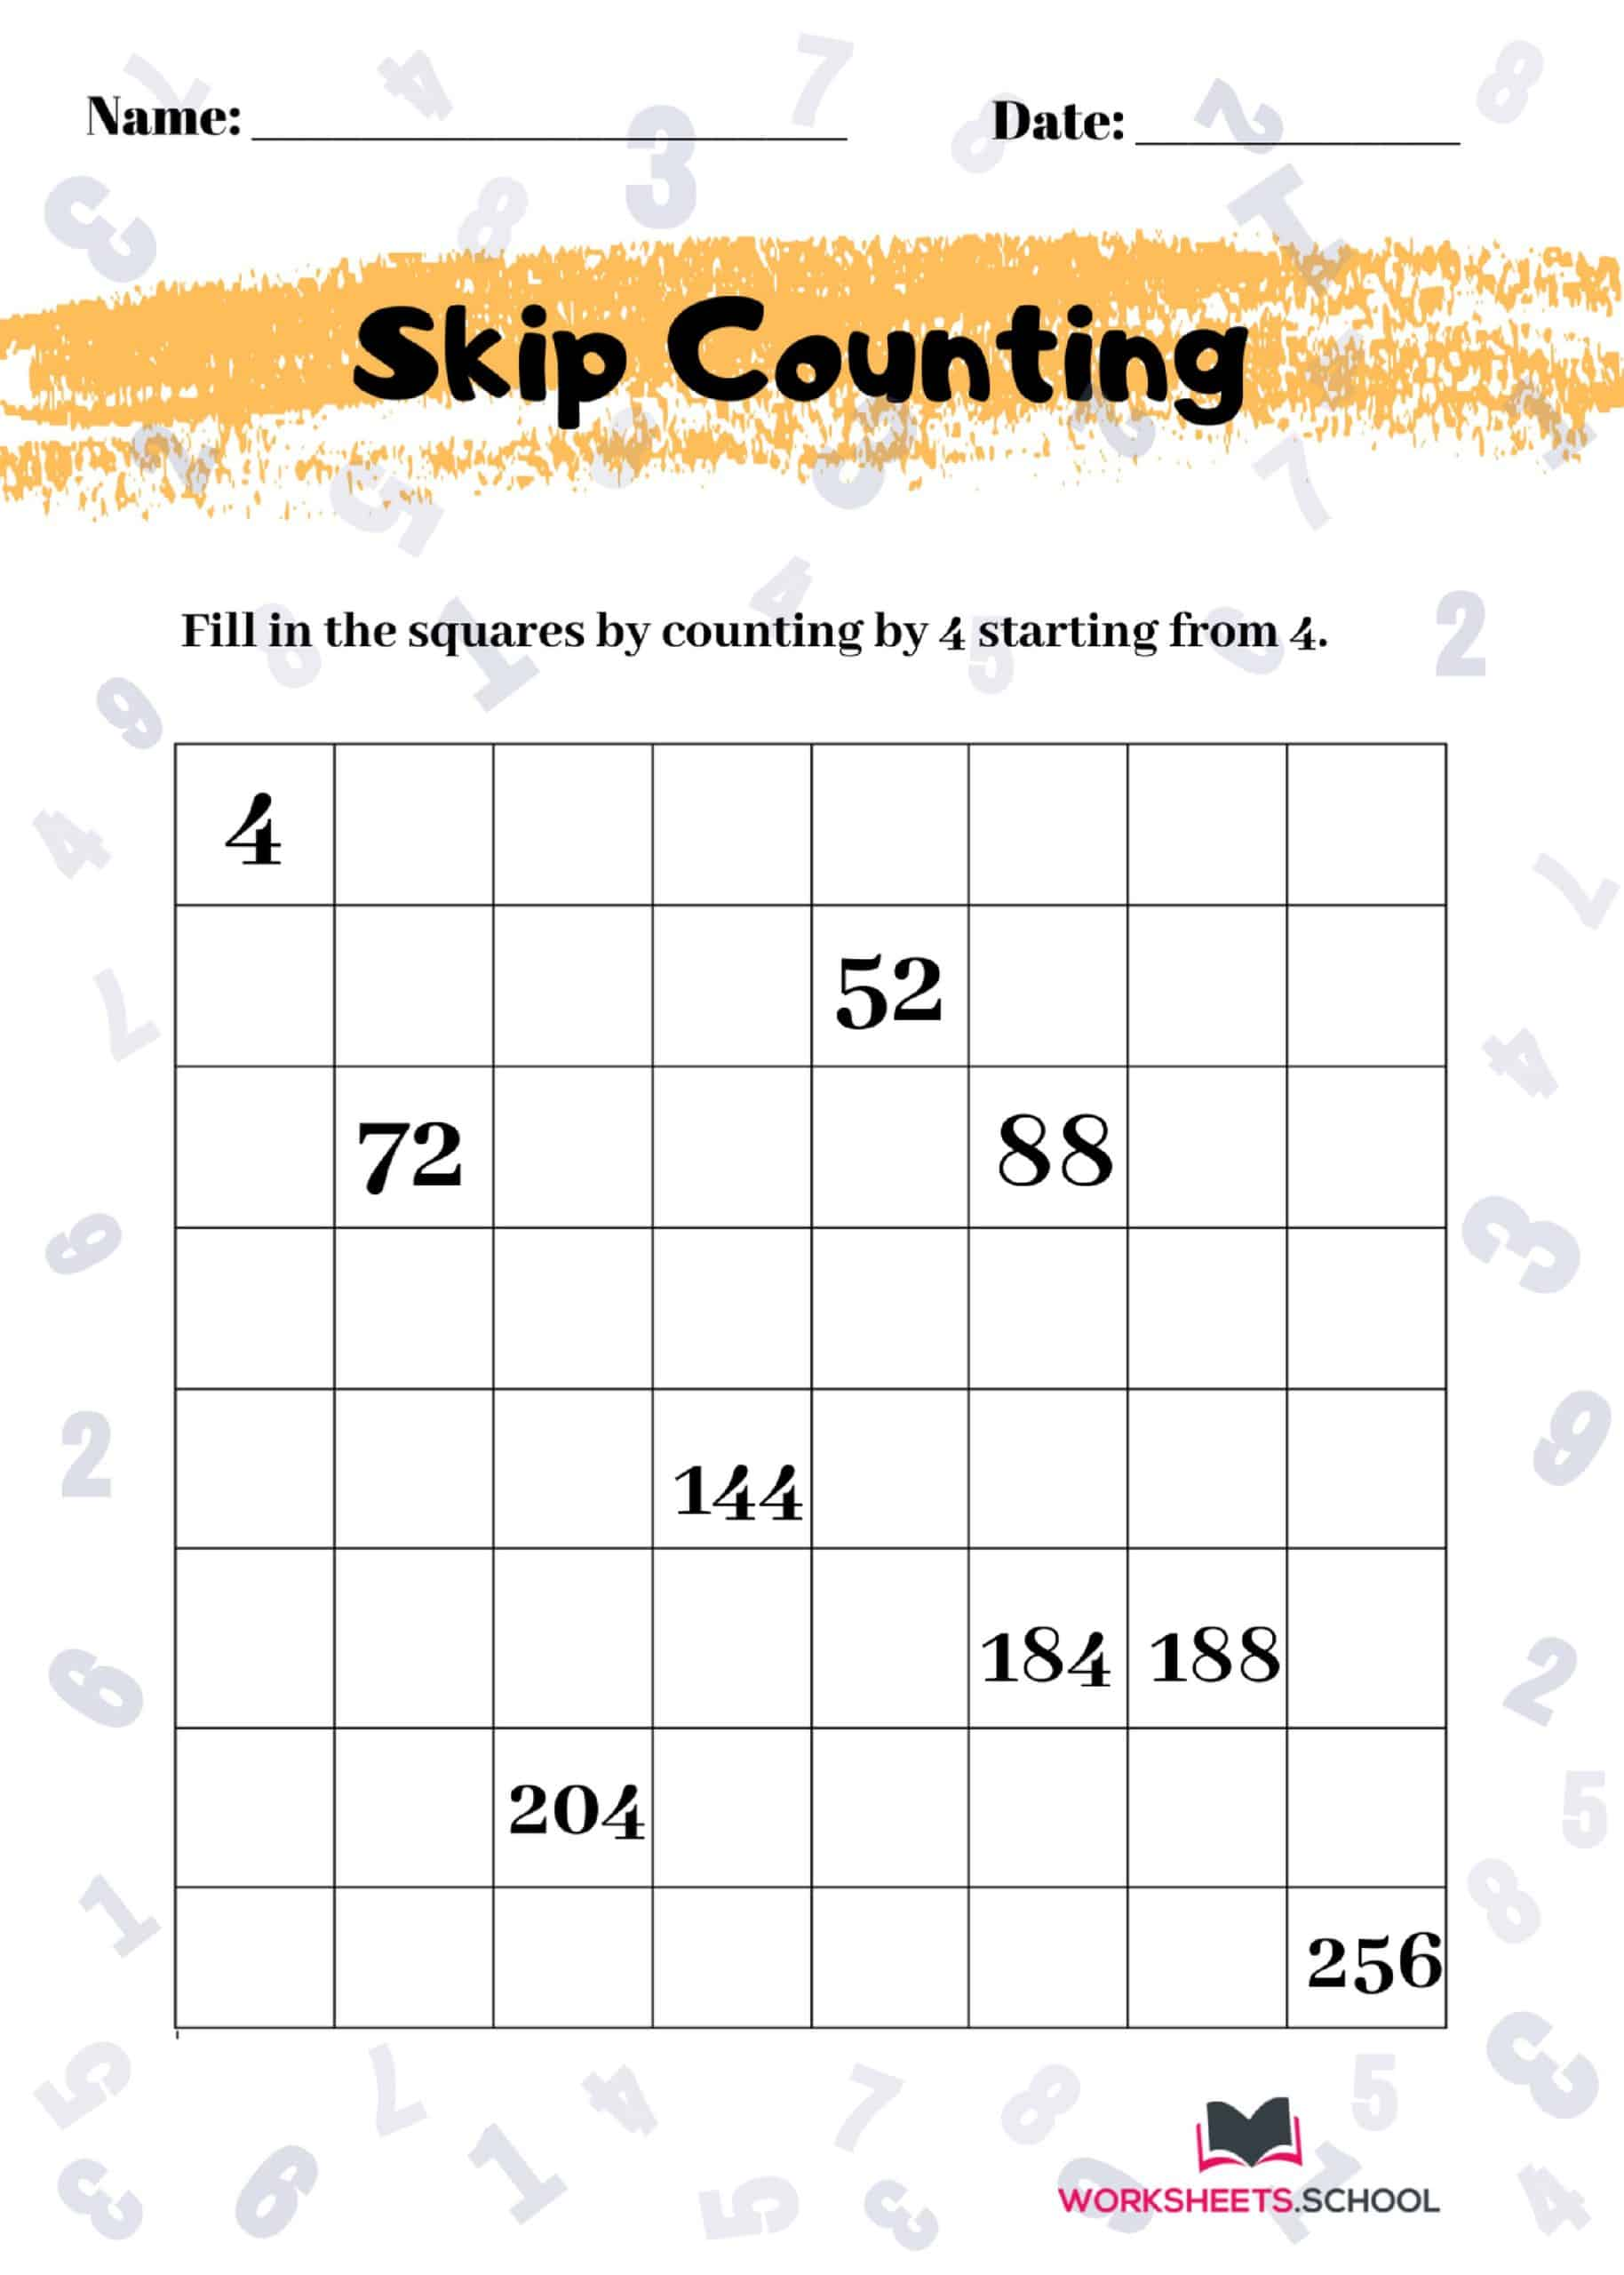 Skip Counting Worksheet by 4